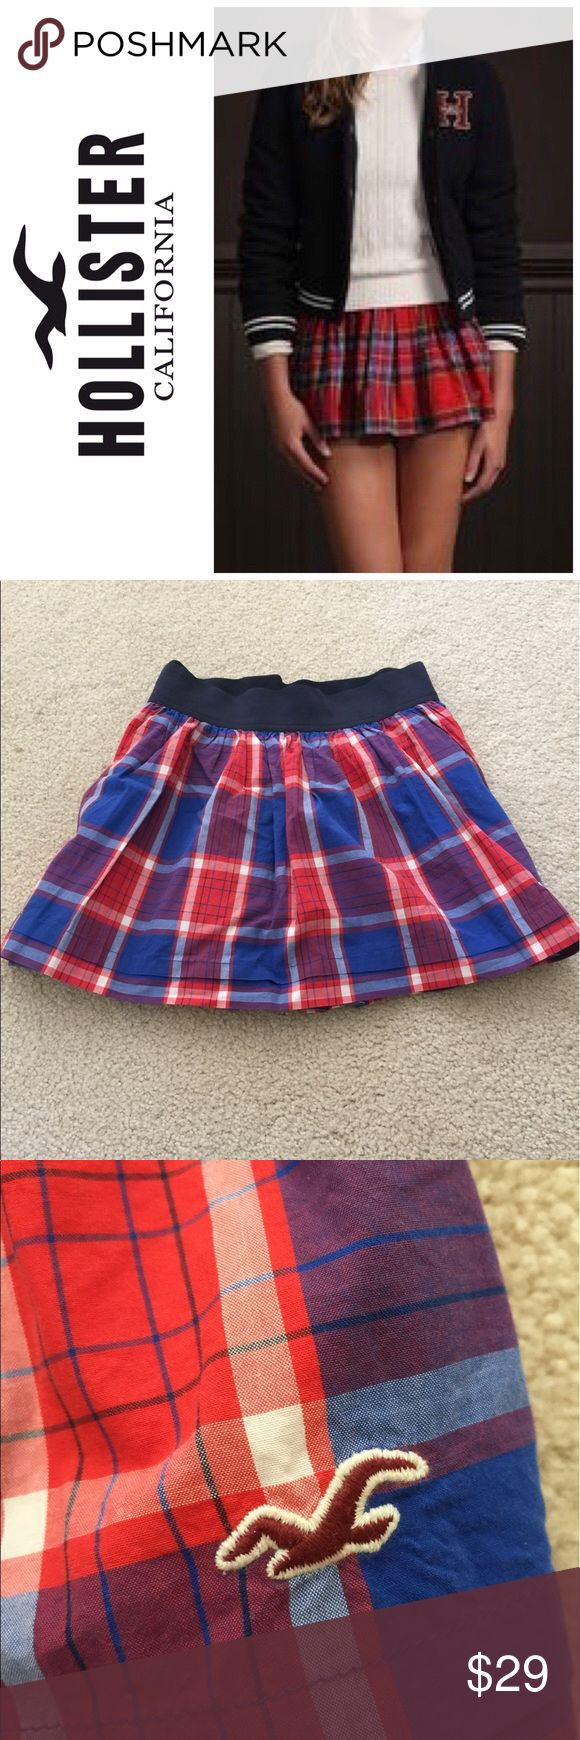 NWOT hollister plaid mini skirt Adorable plaid red and blue mini skirt from hollister. It really channels your inner school girl vibes lol. 😍🦋Never worn. Has an inner lining to that the skirt flows very well and is not see through. ‼️😍Selling to pay off student loans so make me an offer!!💞🎉 stock photo shows same skirt in different color. Actual skirt is pictured below Hollister Skirts Mini